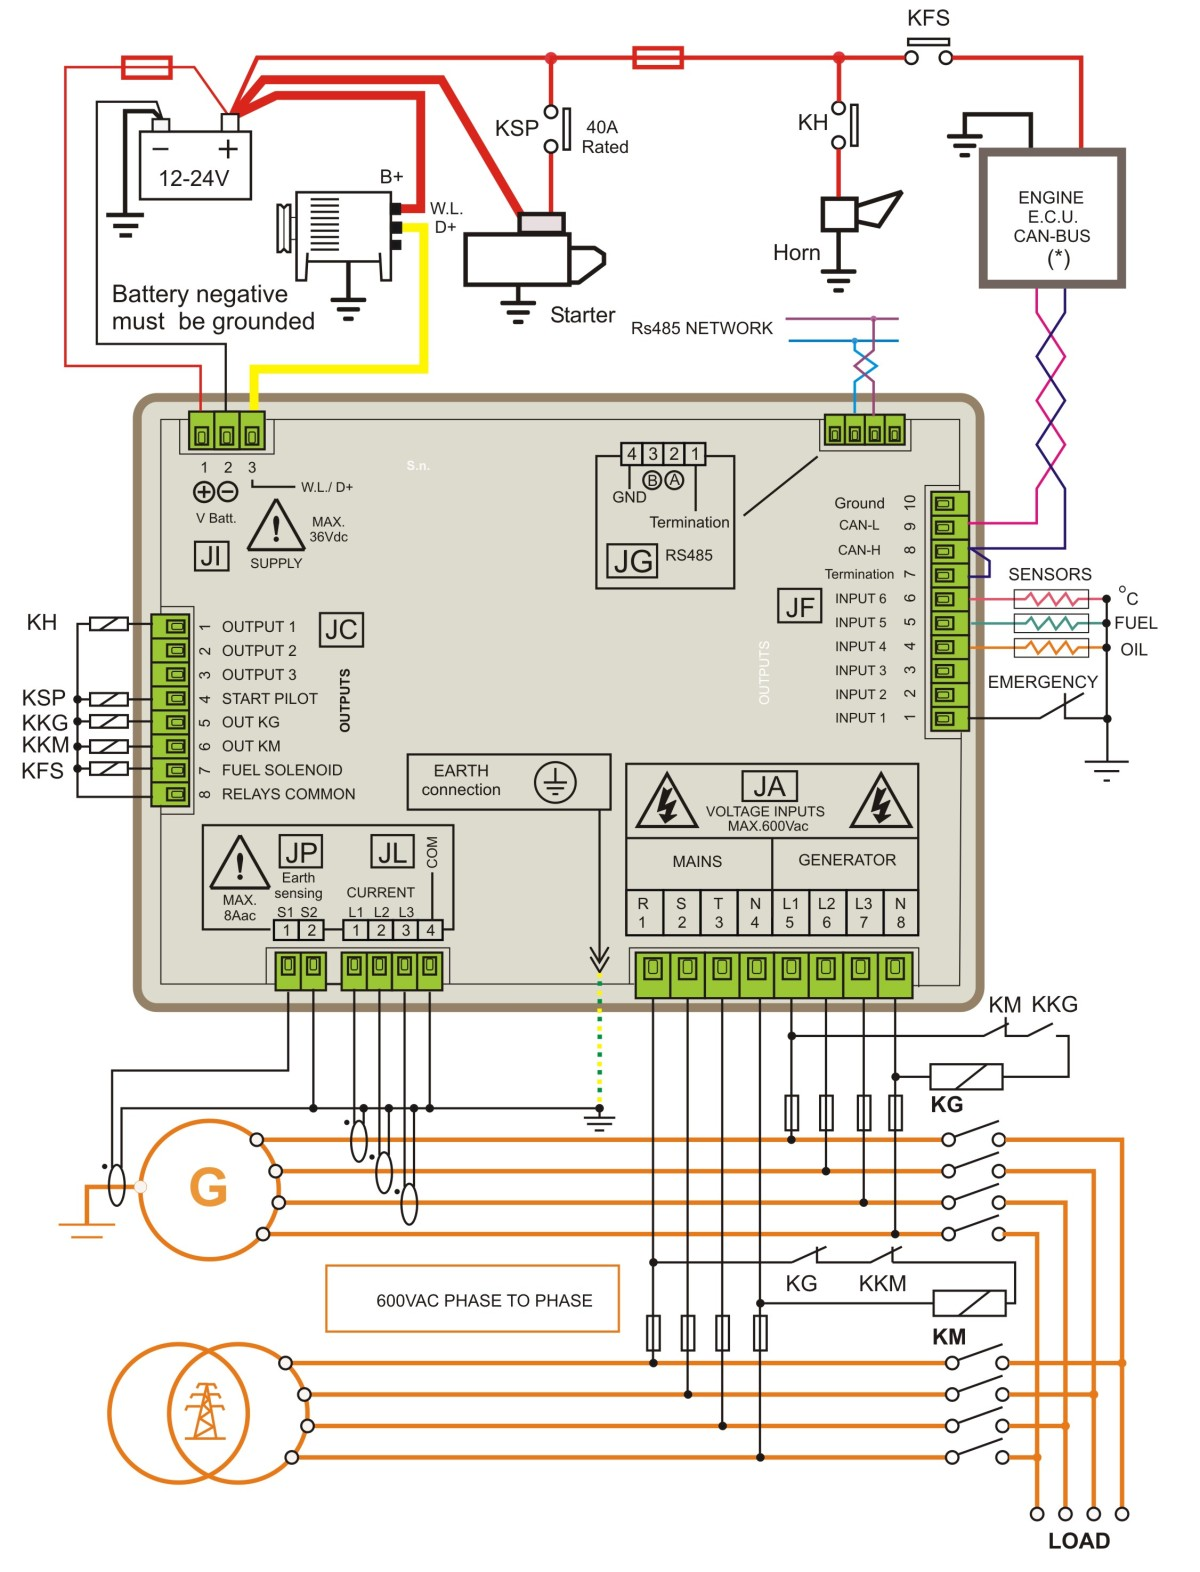 Diesel Generator Control Panel Wiring Diagram BeK3 e1450881313642 wiring diagram generator readingrat net newage stamford generator wiring diagram at panicattacktreatment.co